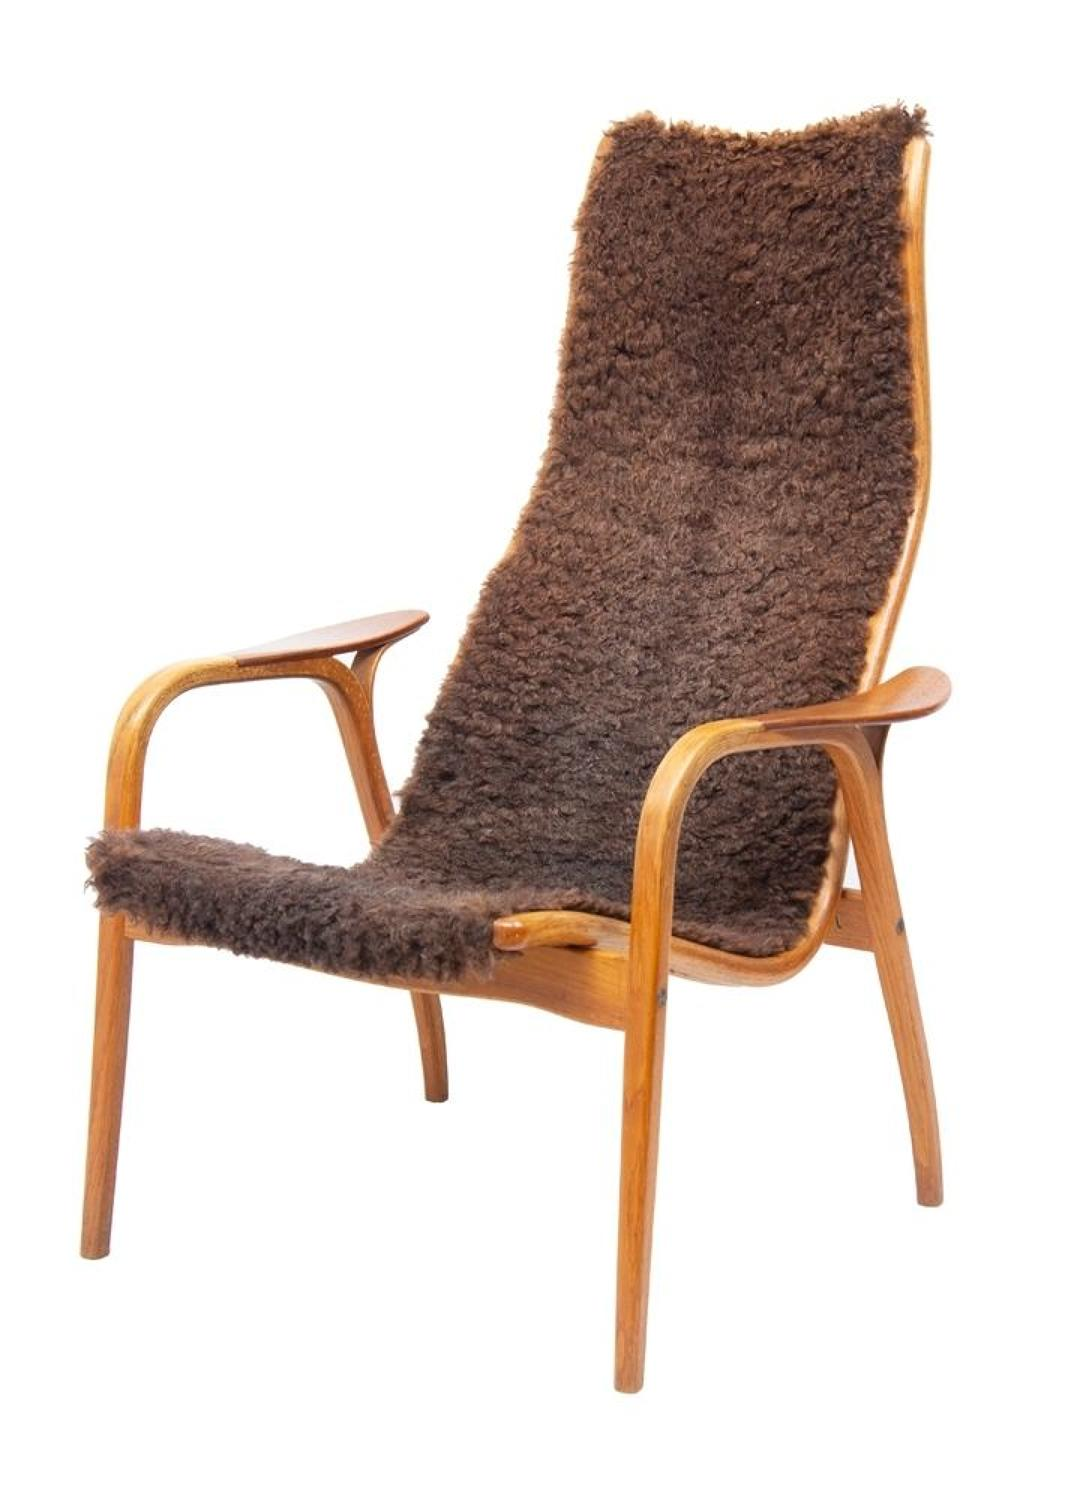 Vintage Lamino Chair by Yngve Ekström for Swedese